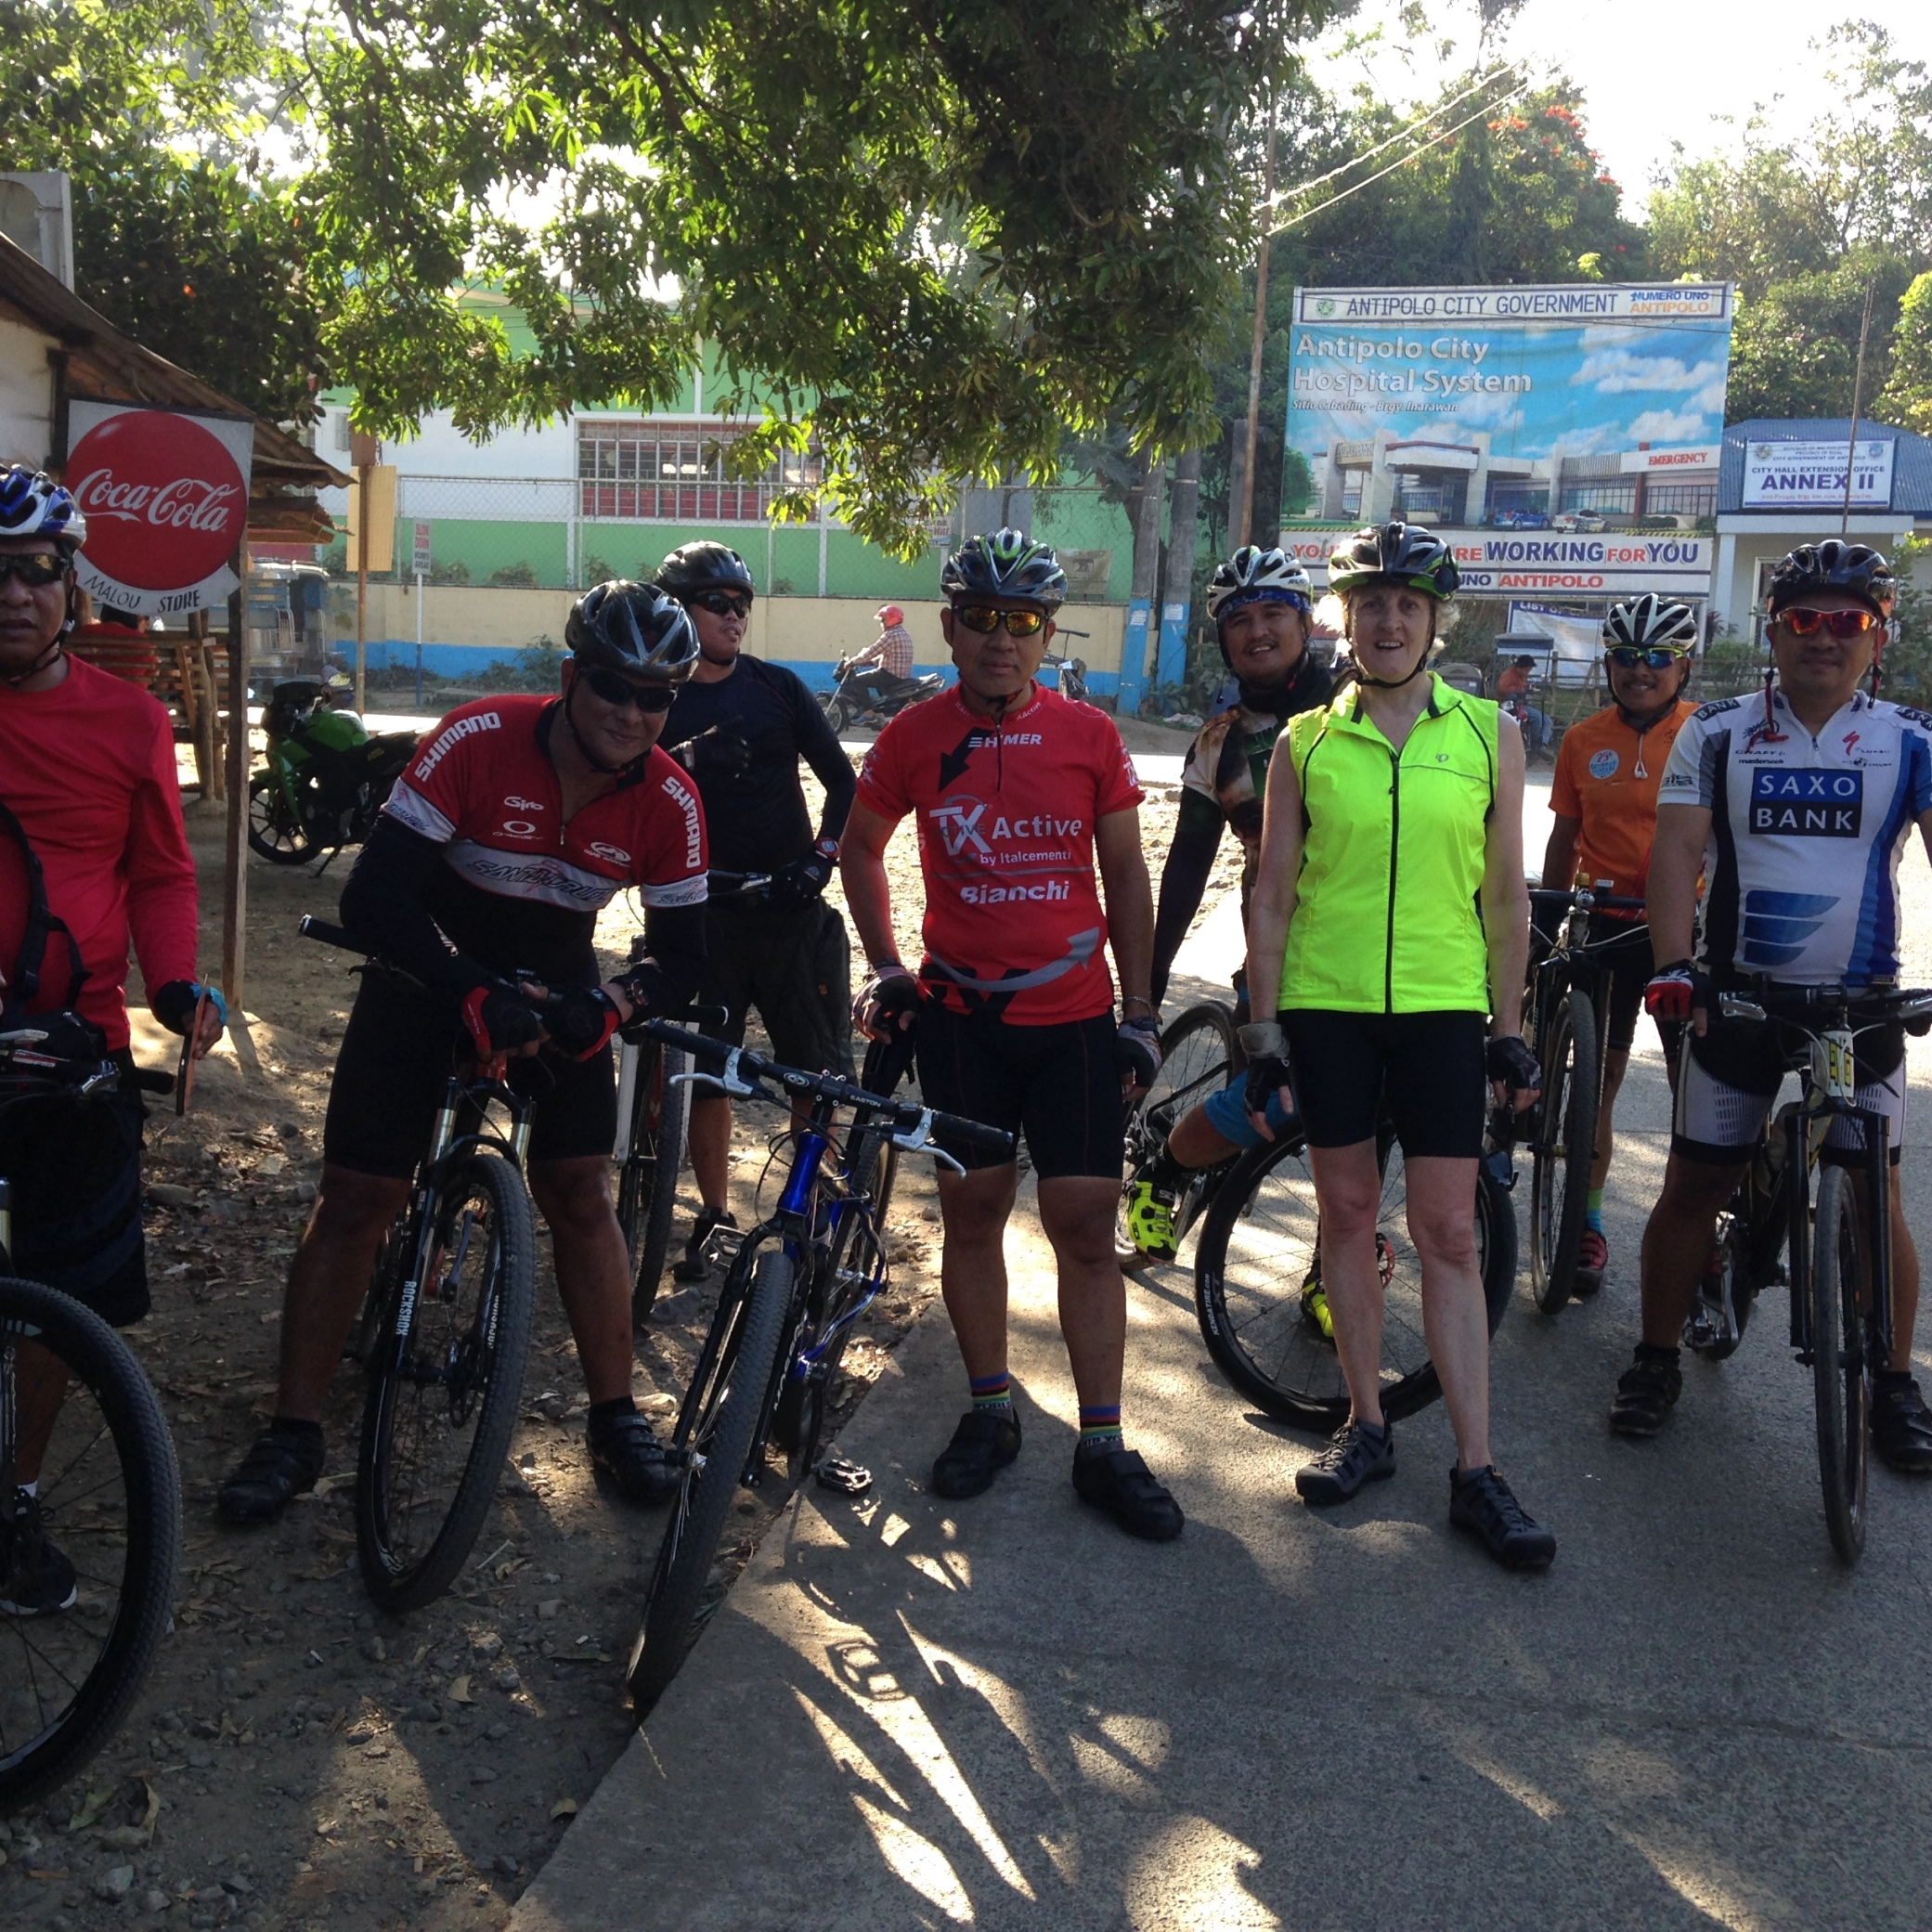 Roman Rojas Road, biking buddies